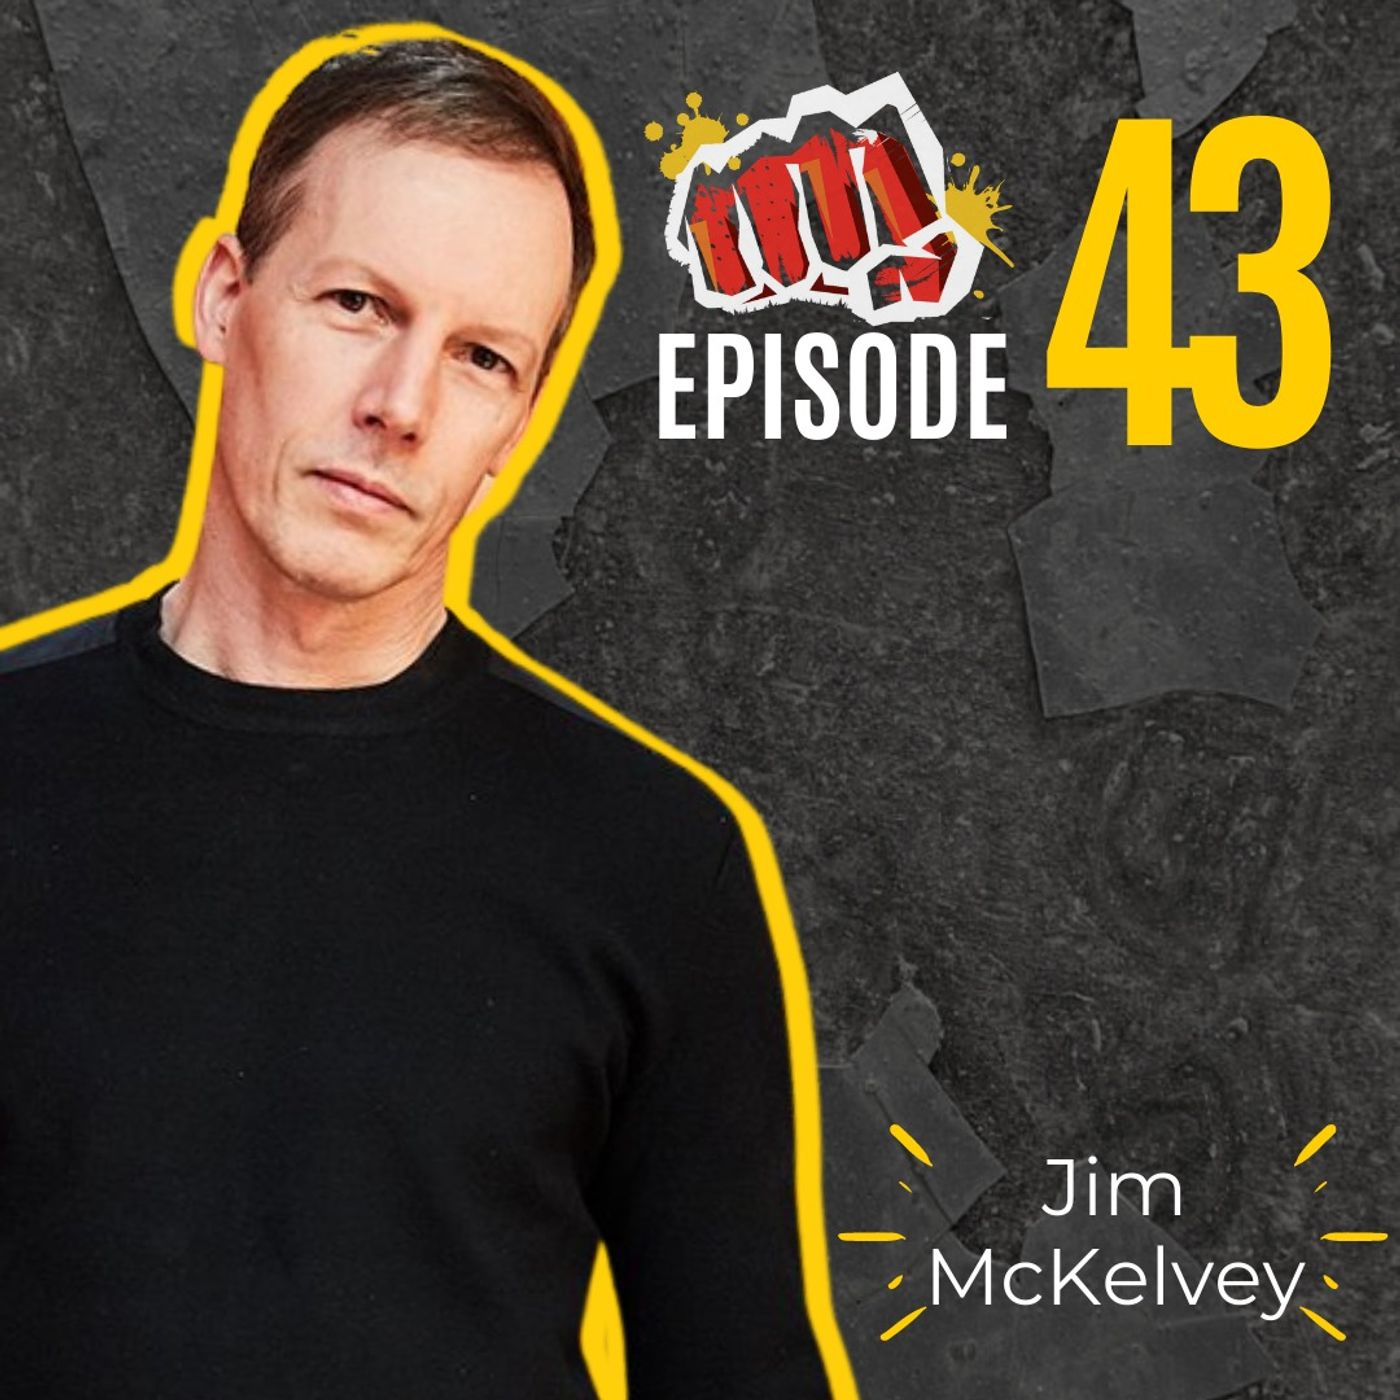 #43: Launch Your Productivity with Jim McKelvey